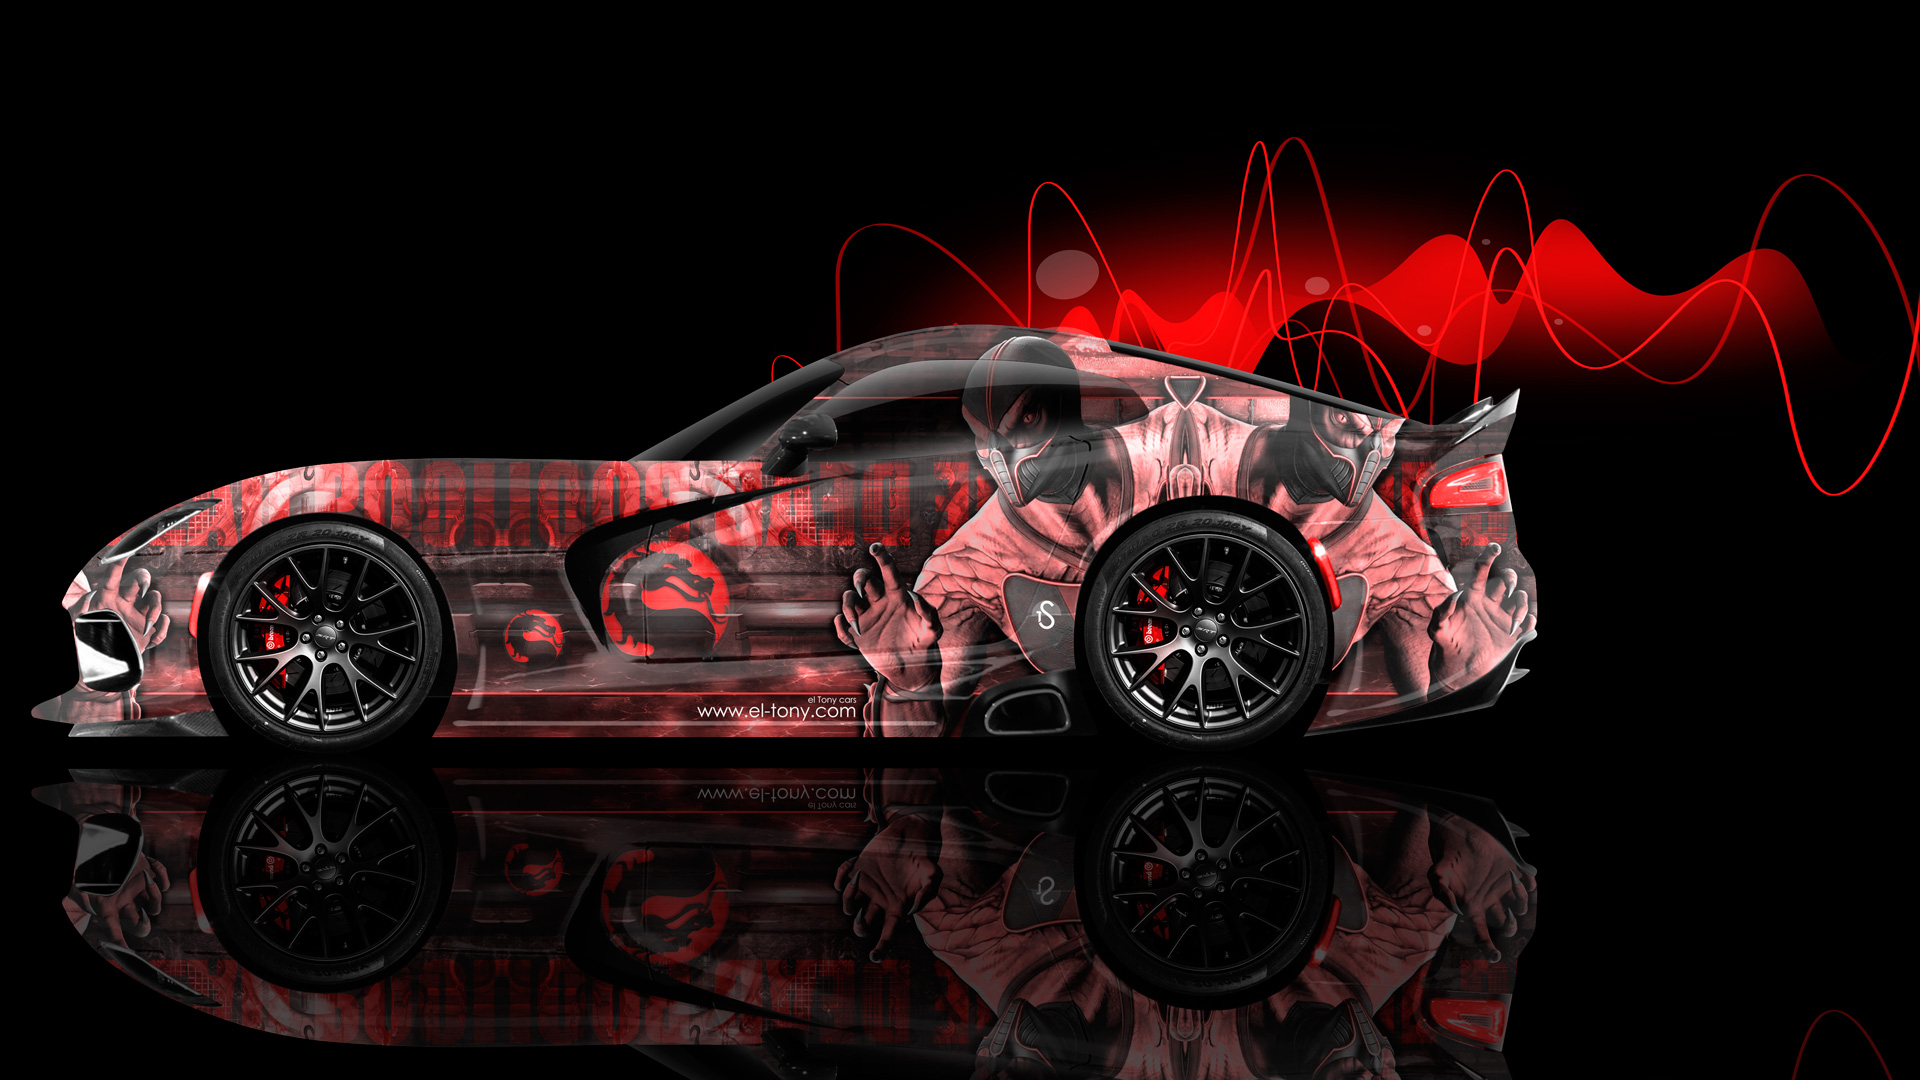 Dodge Viper Mortal Kombat Reptile Aerography Car 2014 El Tony